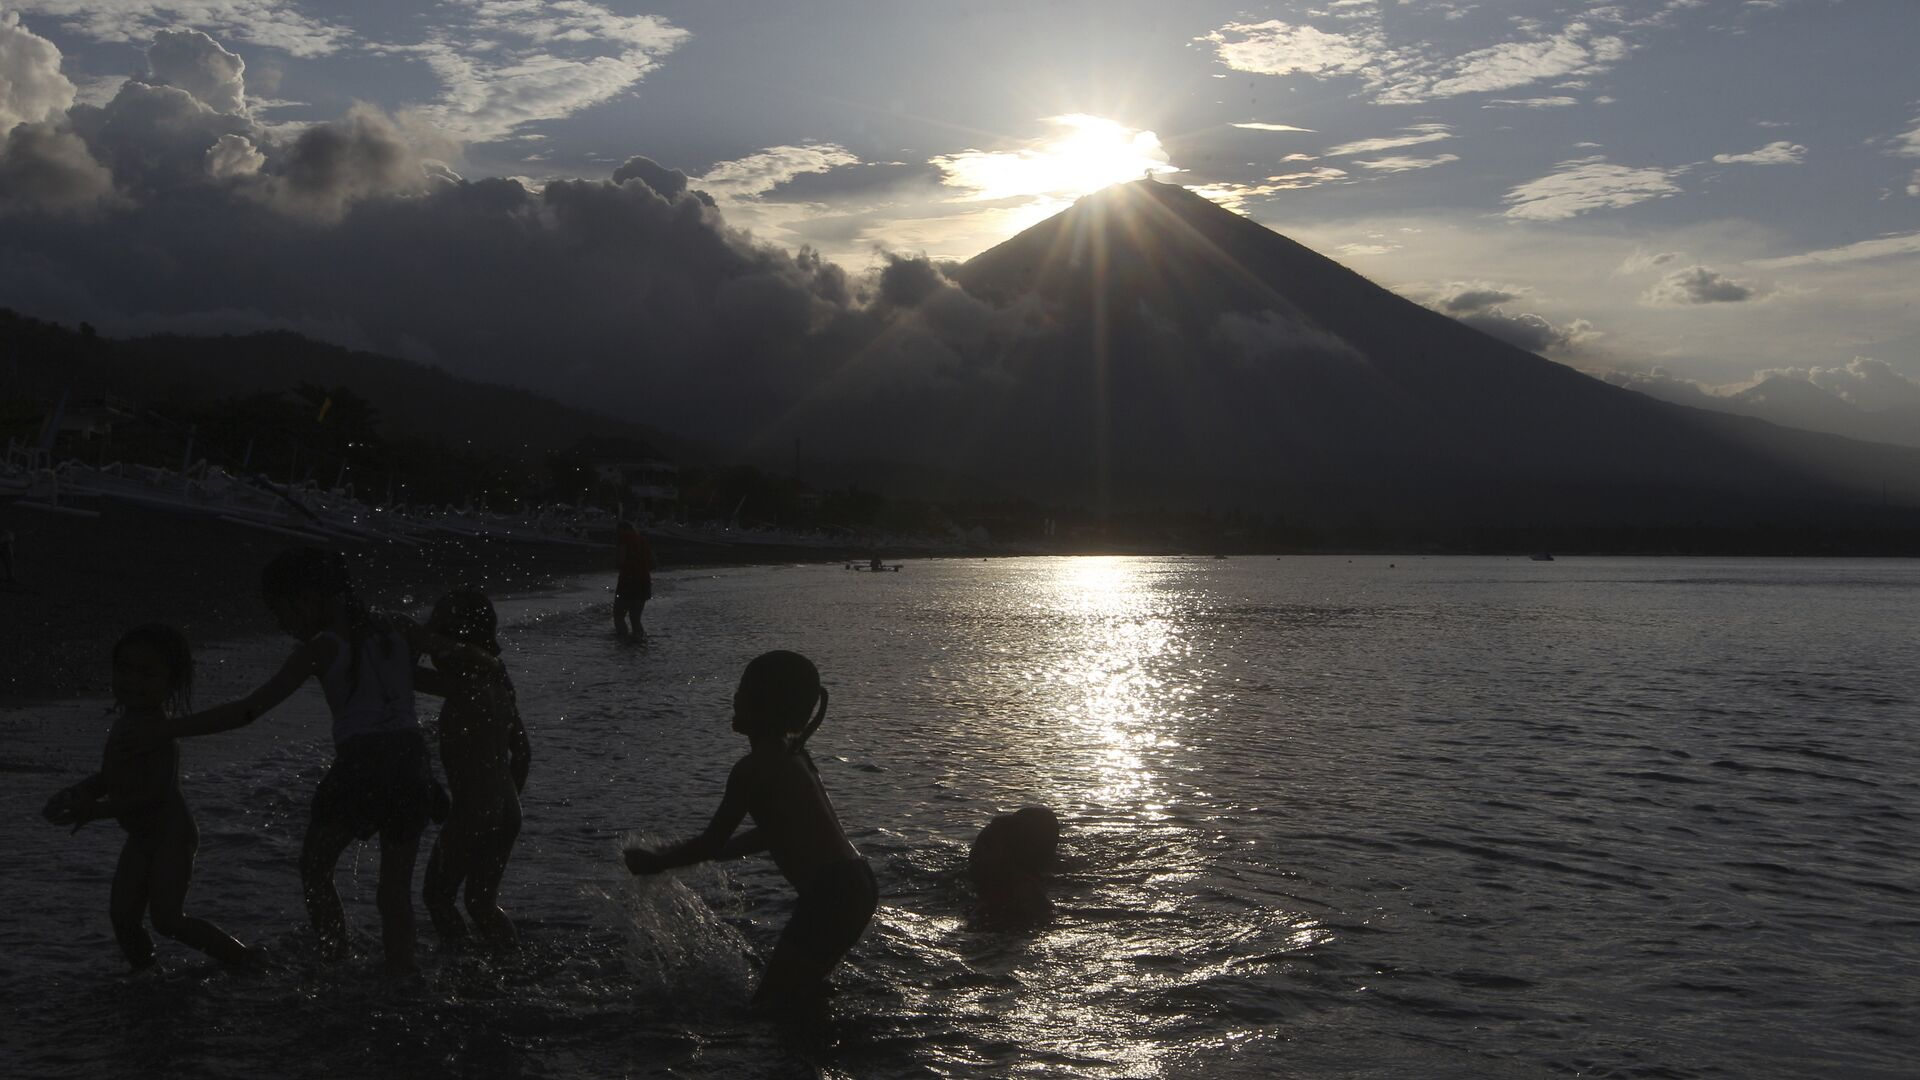 a beach with Mount Agung volcano seen in the background during sunset in Karangasem, Bali, Indonesia.  - Sputnik Italia, 1920, 31.08.2021